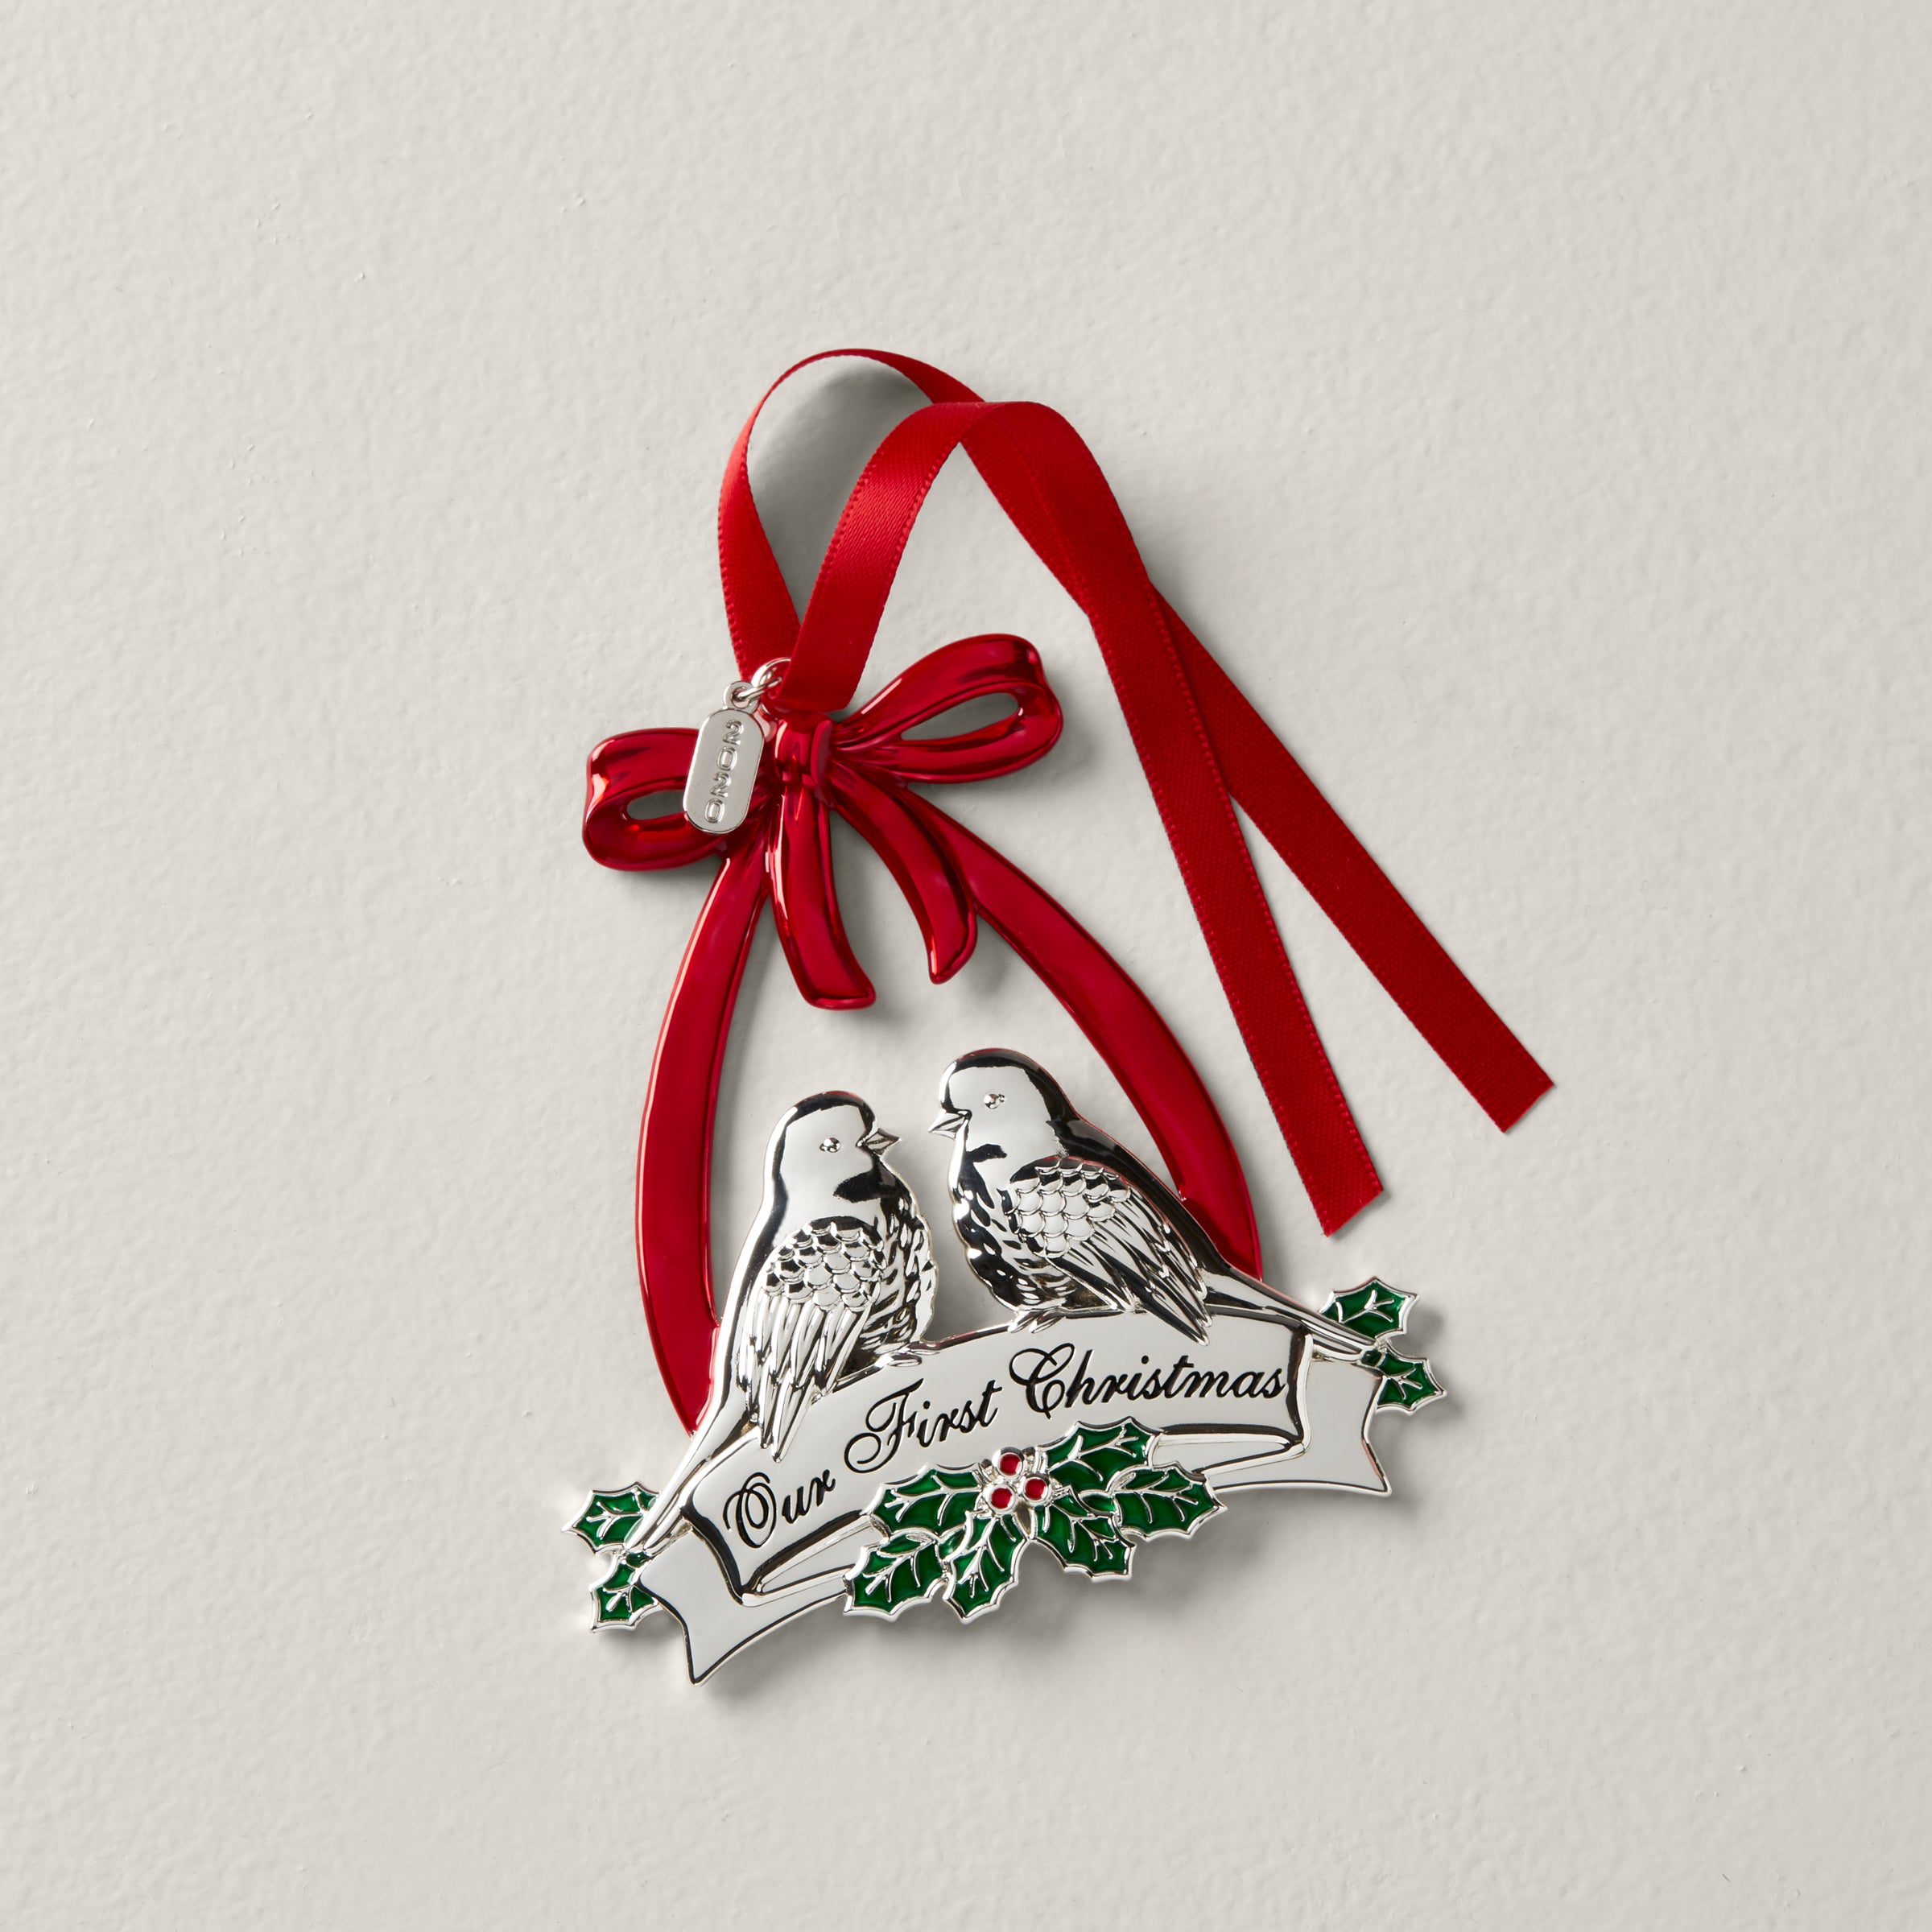 Our First Christmas Picture Ornament 2020 2020 Our First Christmas Dove Ornament – Lenox Corporation